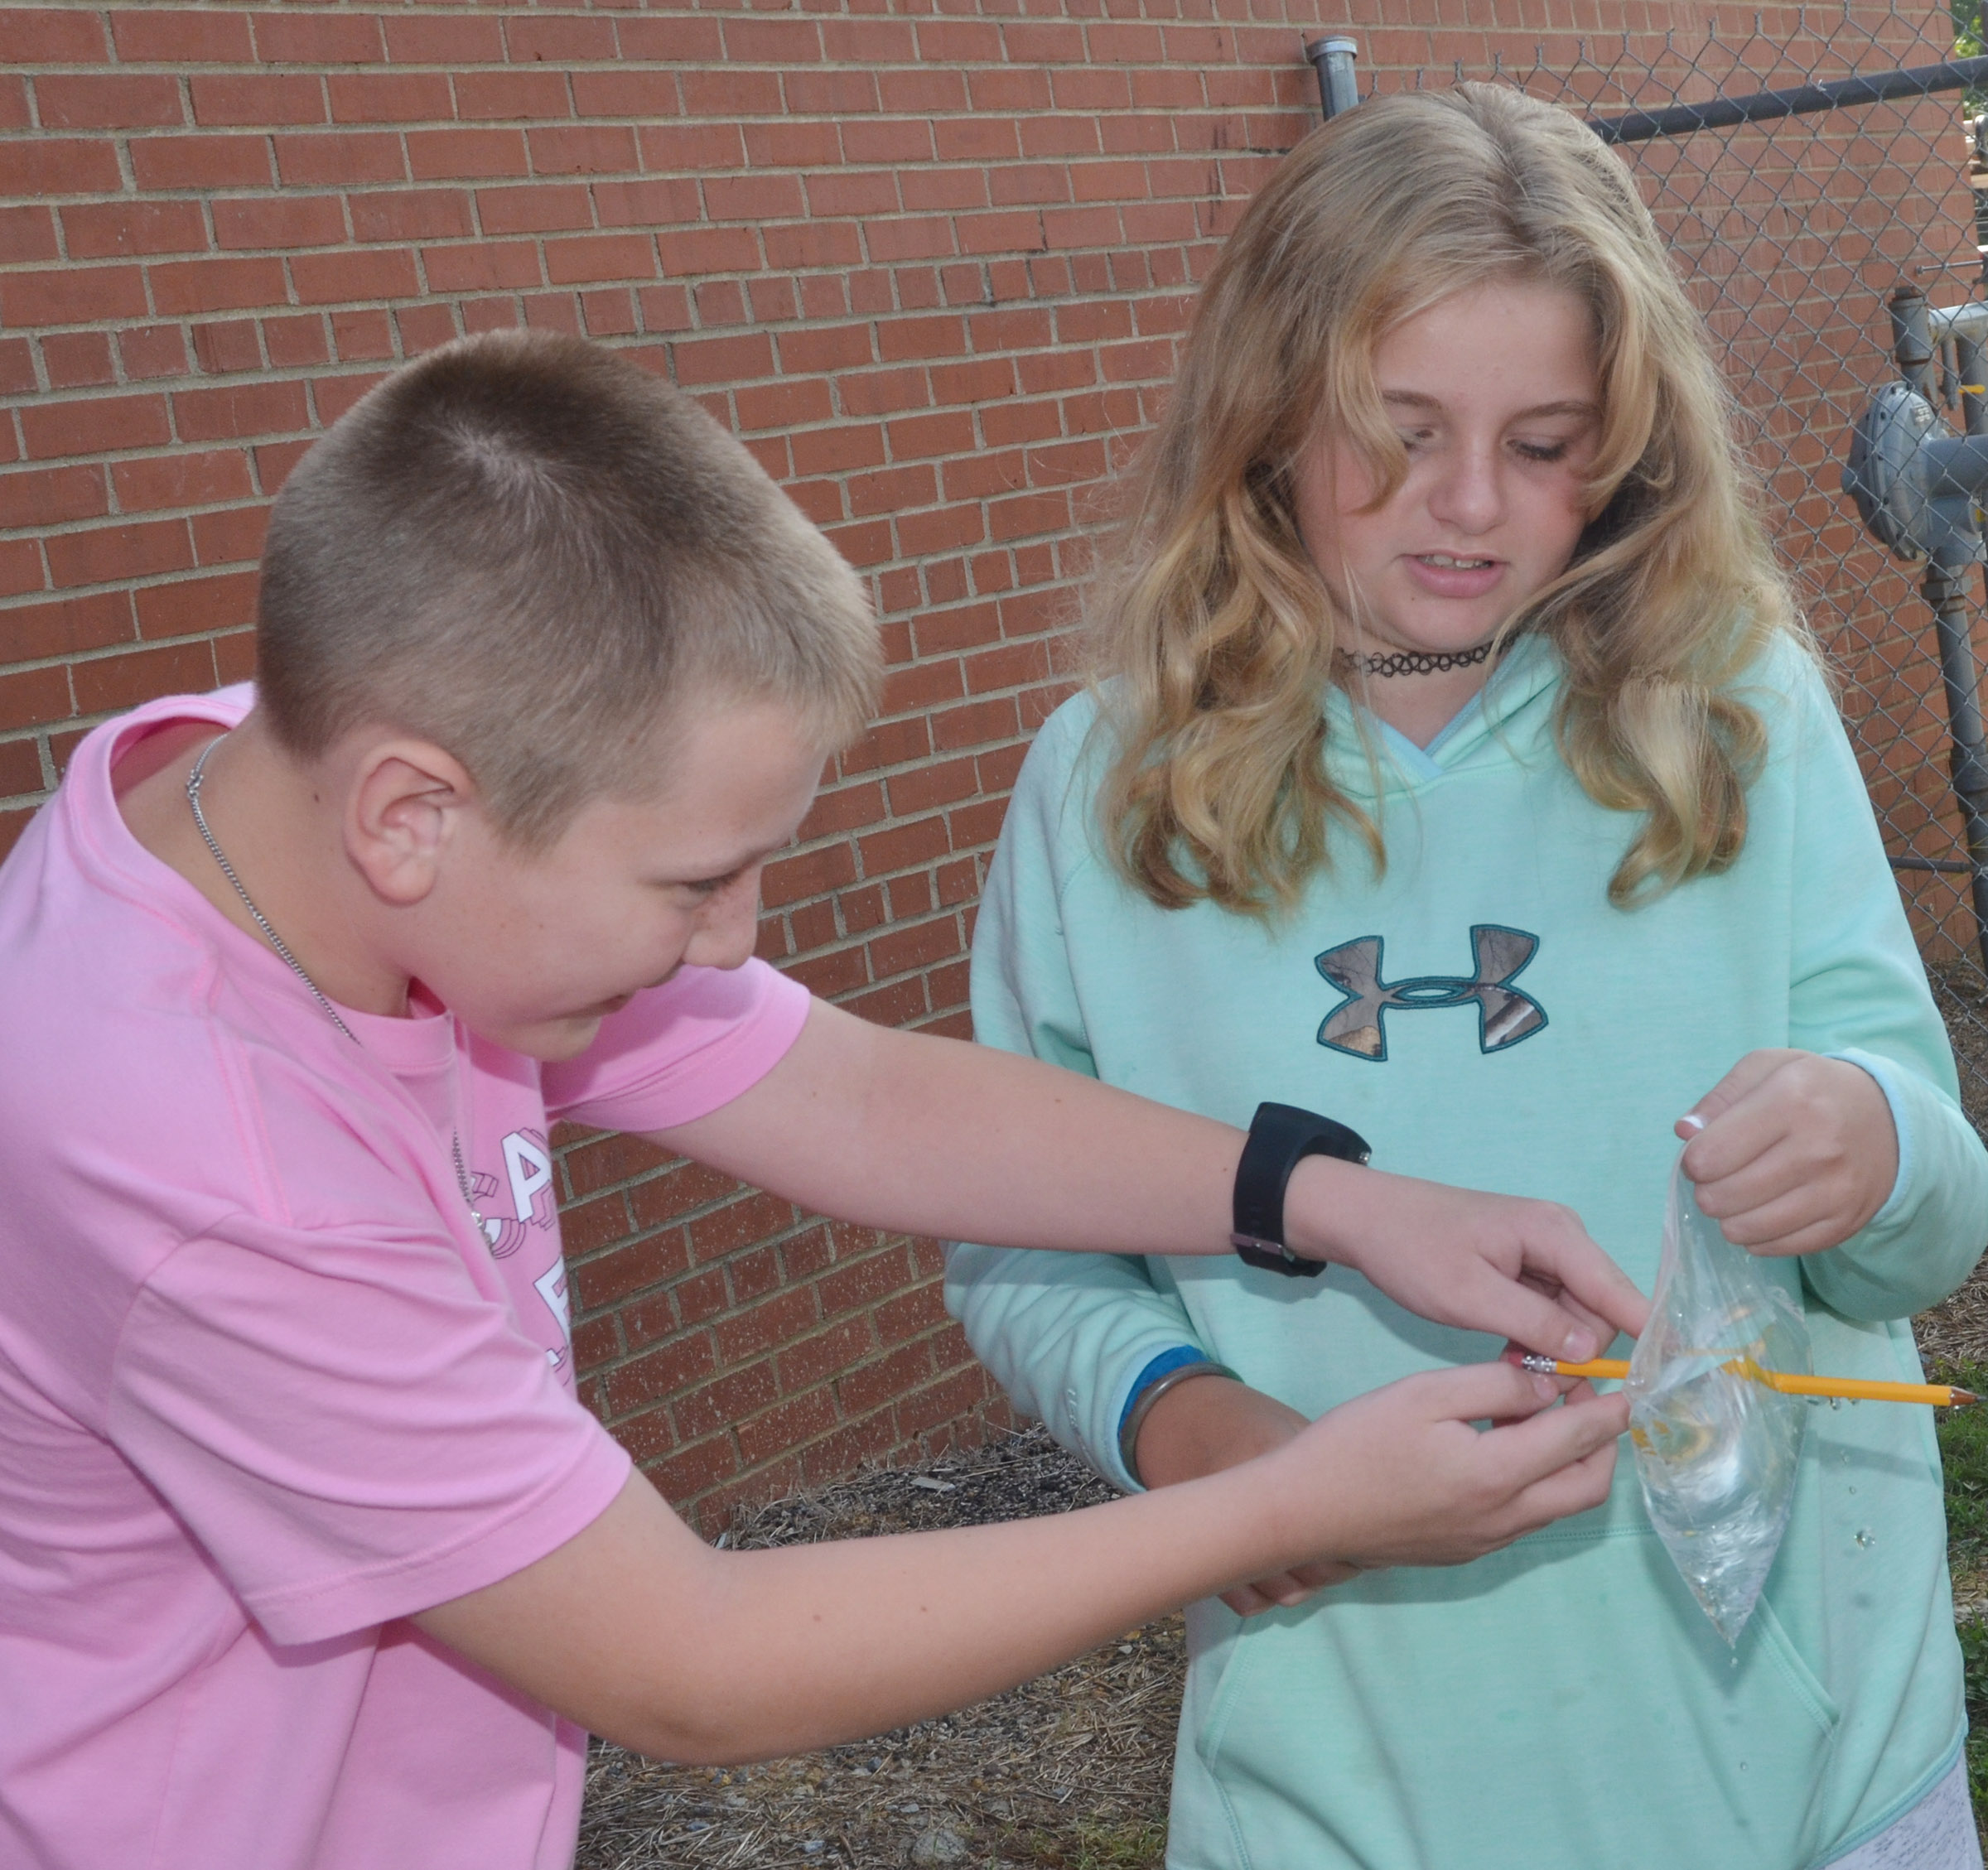 CES fifth-graders Kaleb Miller, at left, and Dakota Broyles see how a Ziploc bag acts as a polymer, and, therefore, water inside doesn't spill when a pencil pierces the bag.